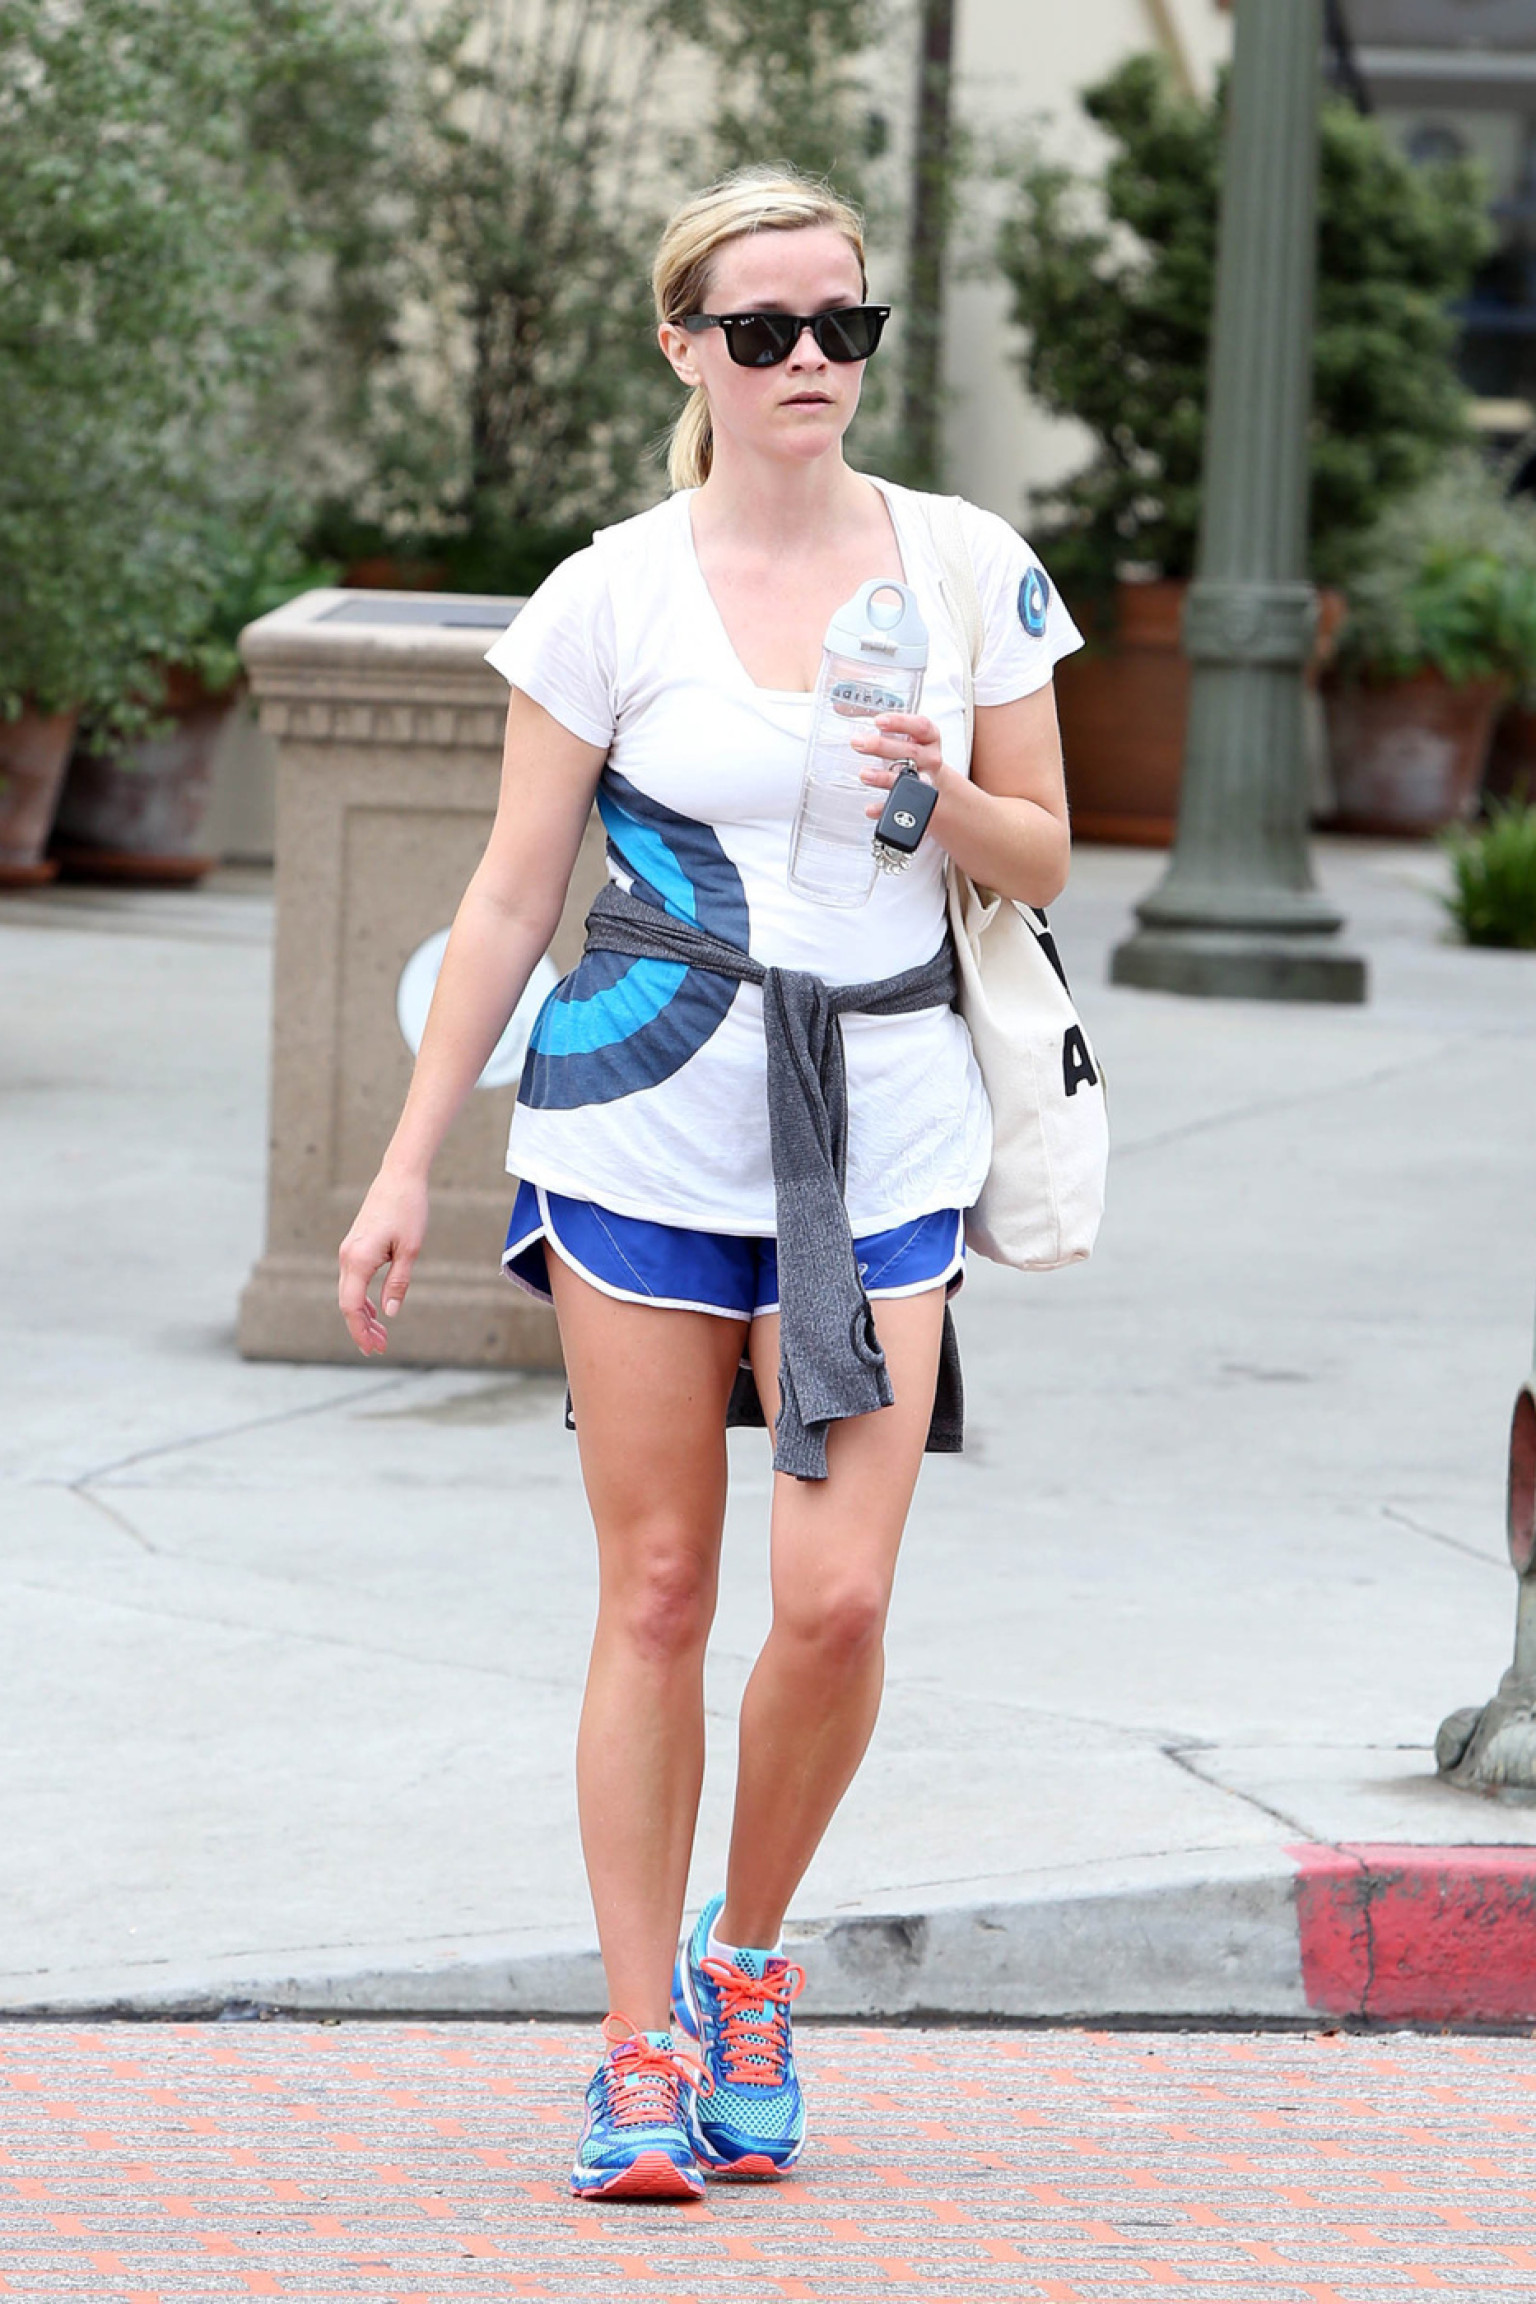 Reese Witherspoon Rocks Short Shorts And She S Looking